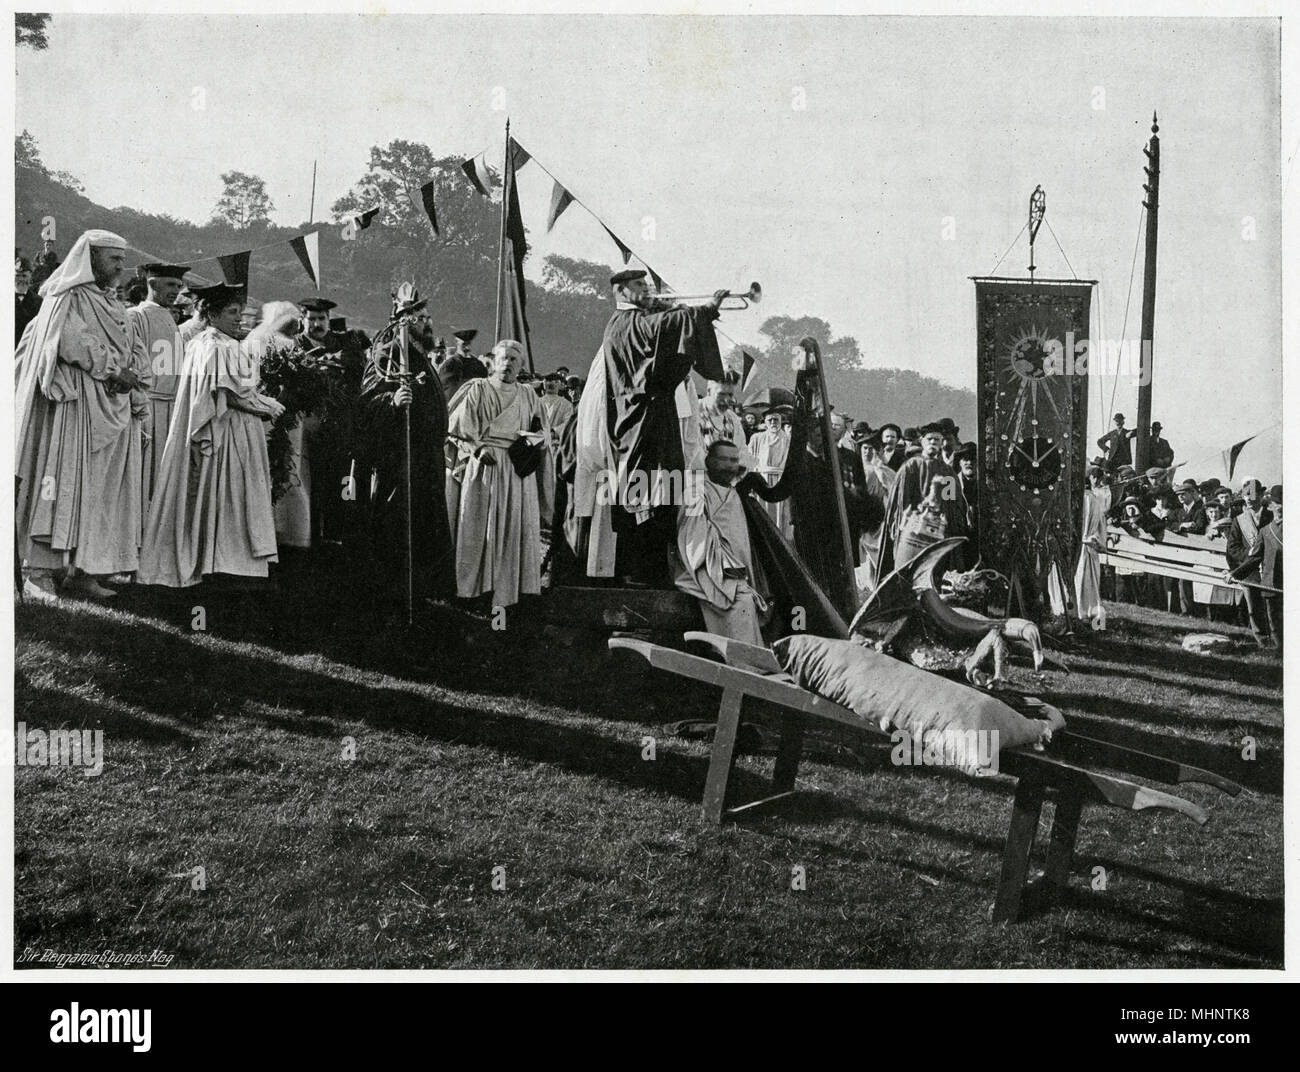 'Opening of Gorsedd', Ceremony in which druids are in a circle, the Gorsedd (meaning chief) sit on a throne, where the Eisteddfod is proclaimed.     Date: 1906 - Stock Image